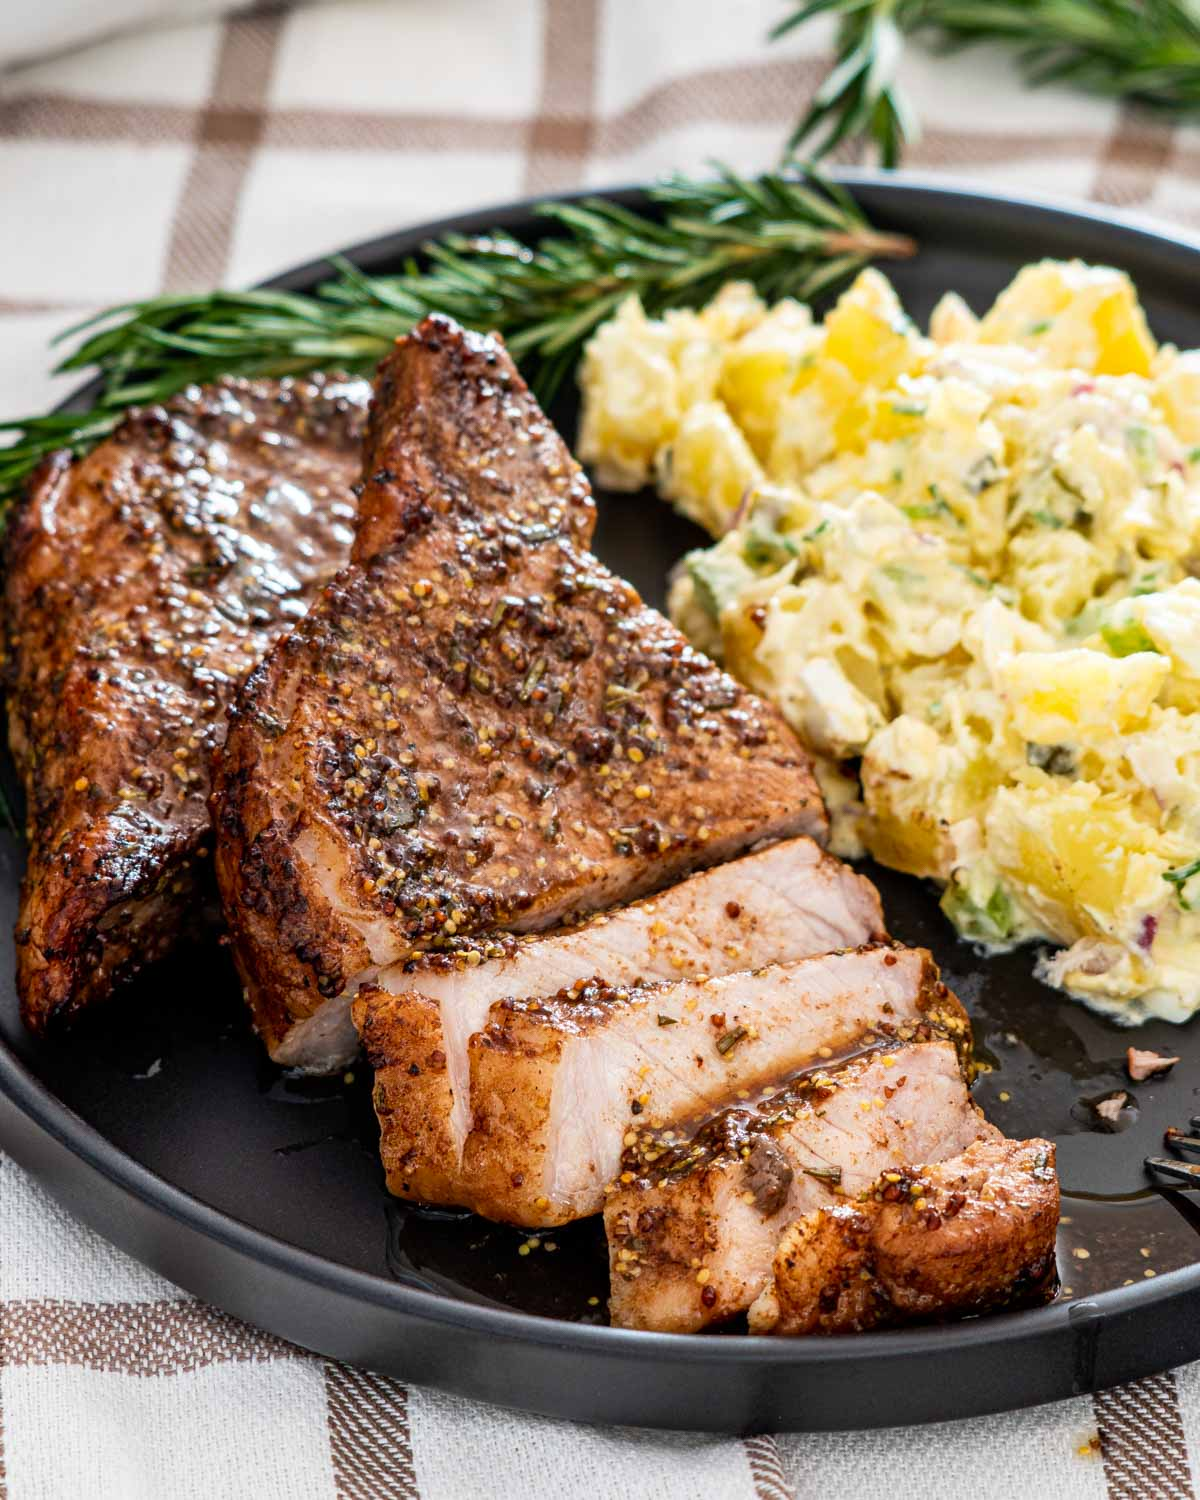 a mustard balsamic pork chop on a black plate sliced up next to potato salad.